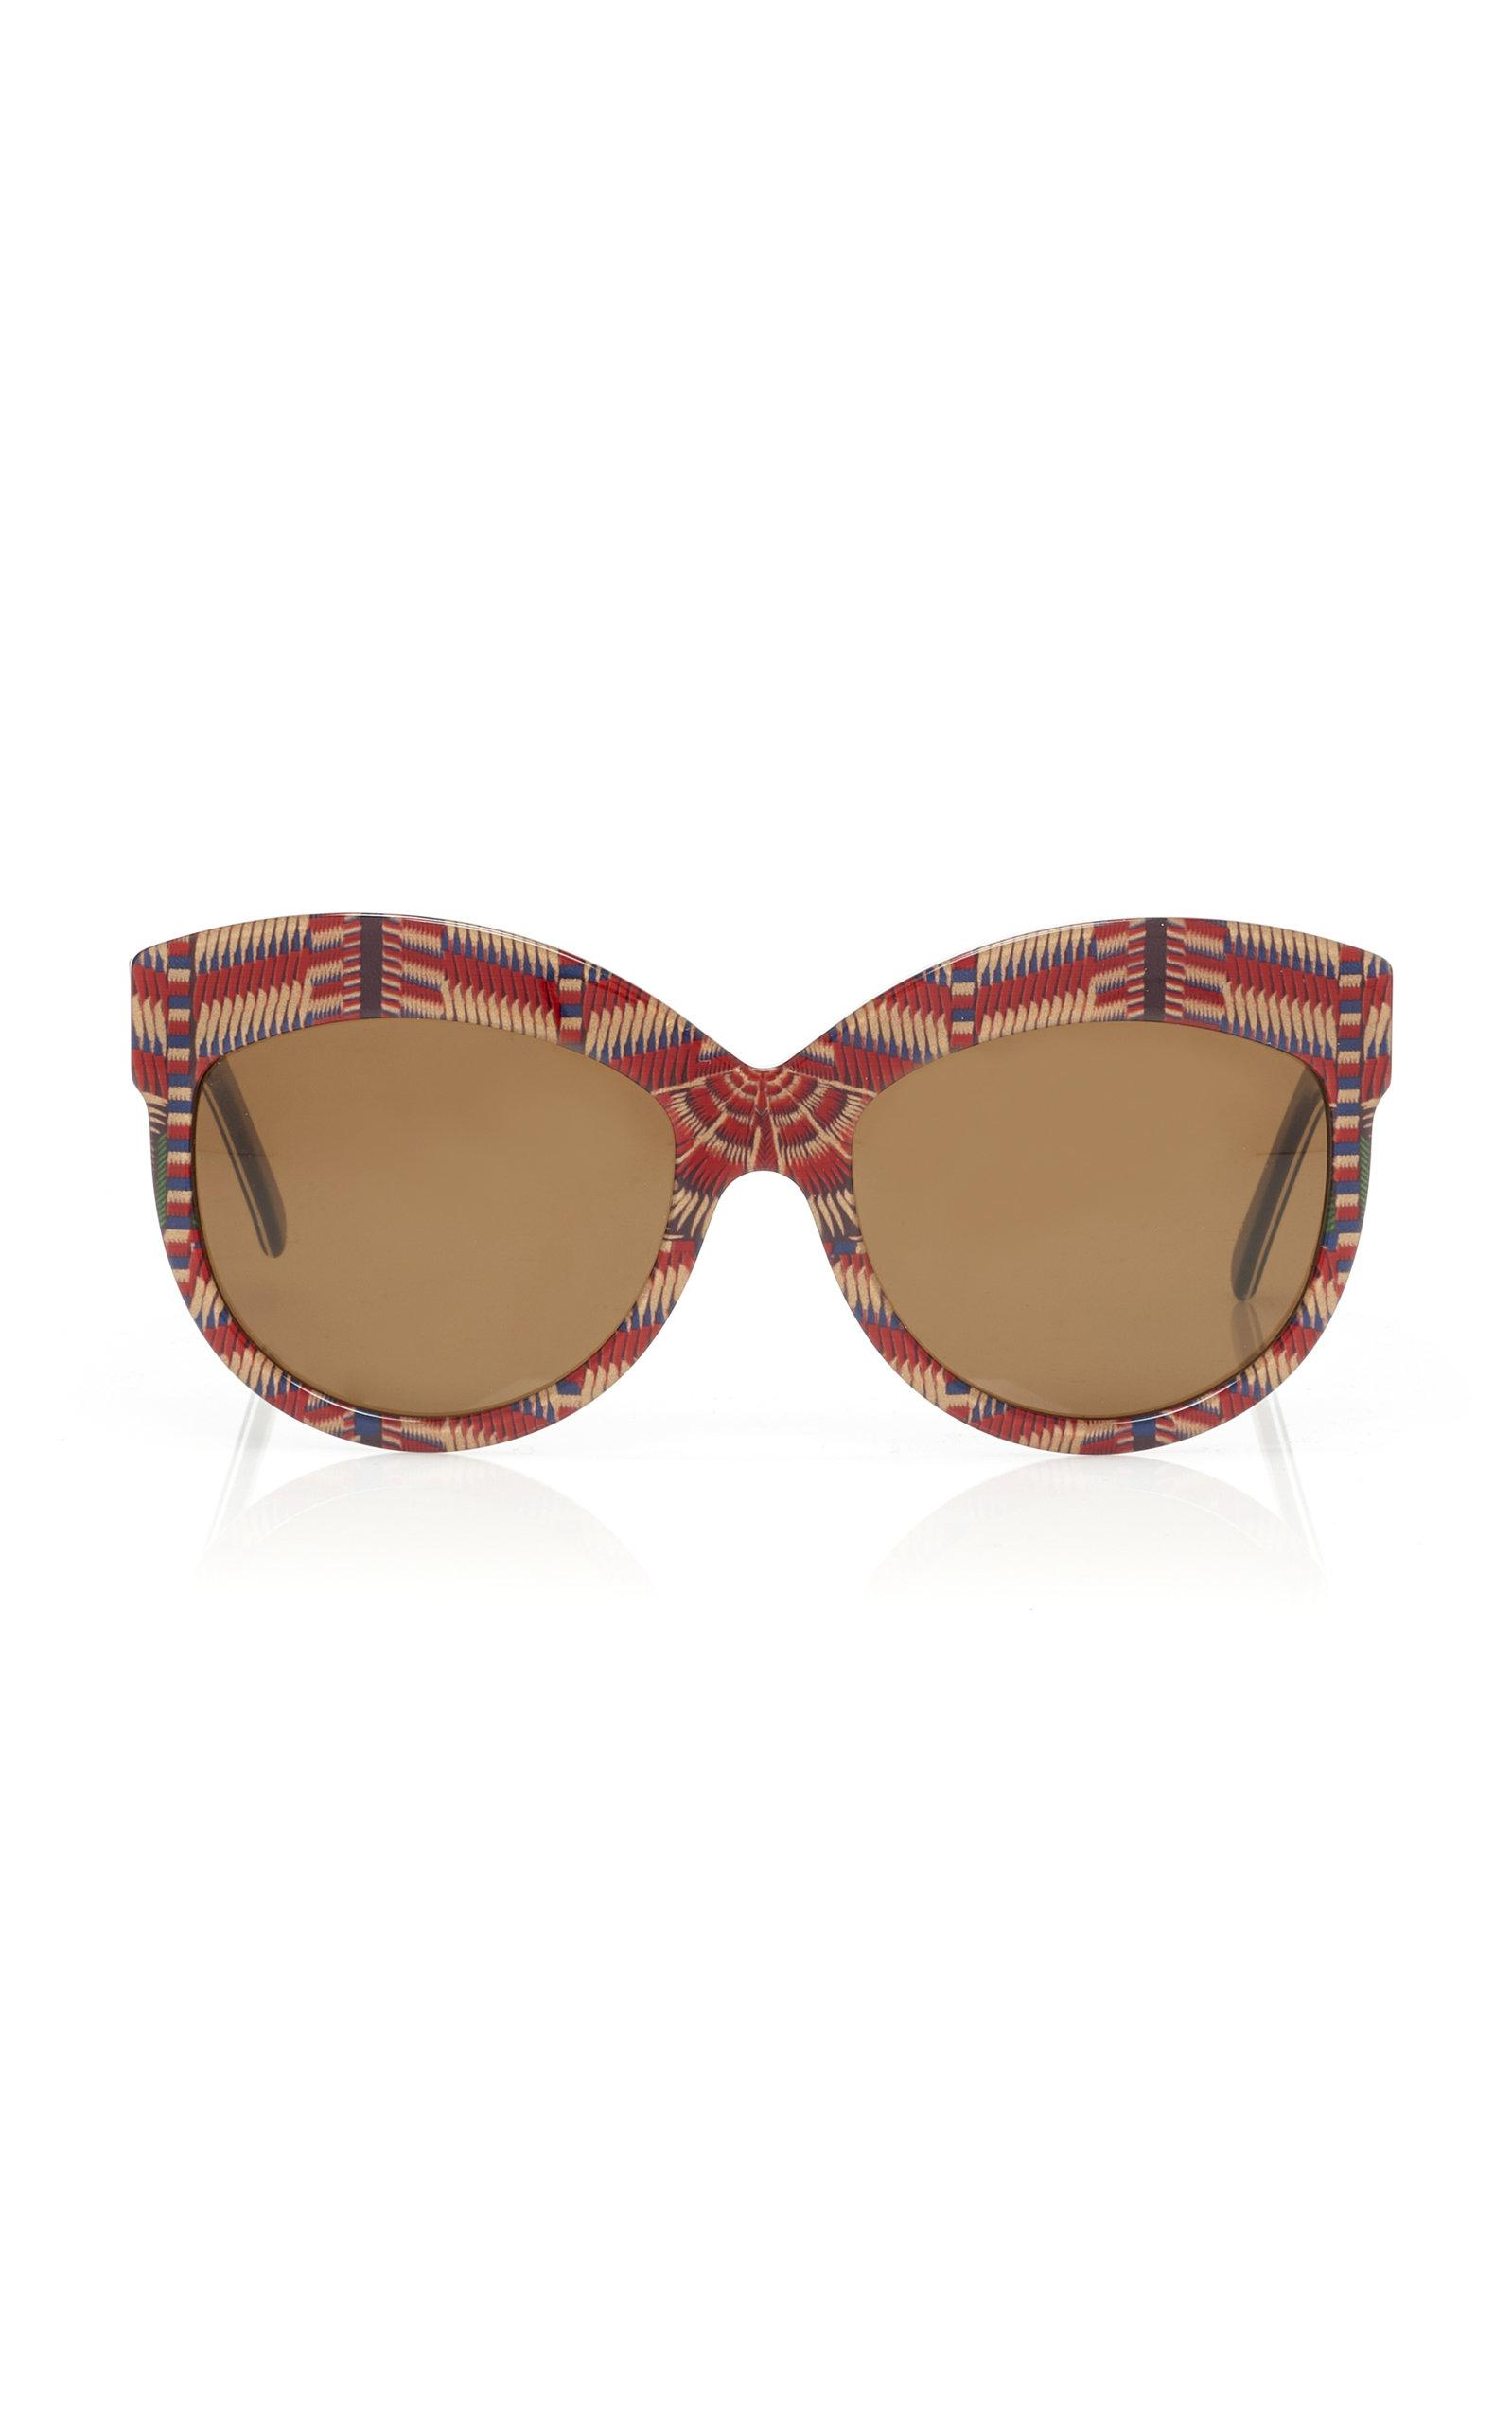 f7a1eb733a8 Rianna + Nina X Andy Wolf Carnaval Bahia Sunglasses in Red - Lyst